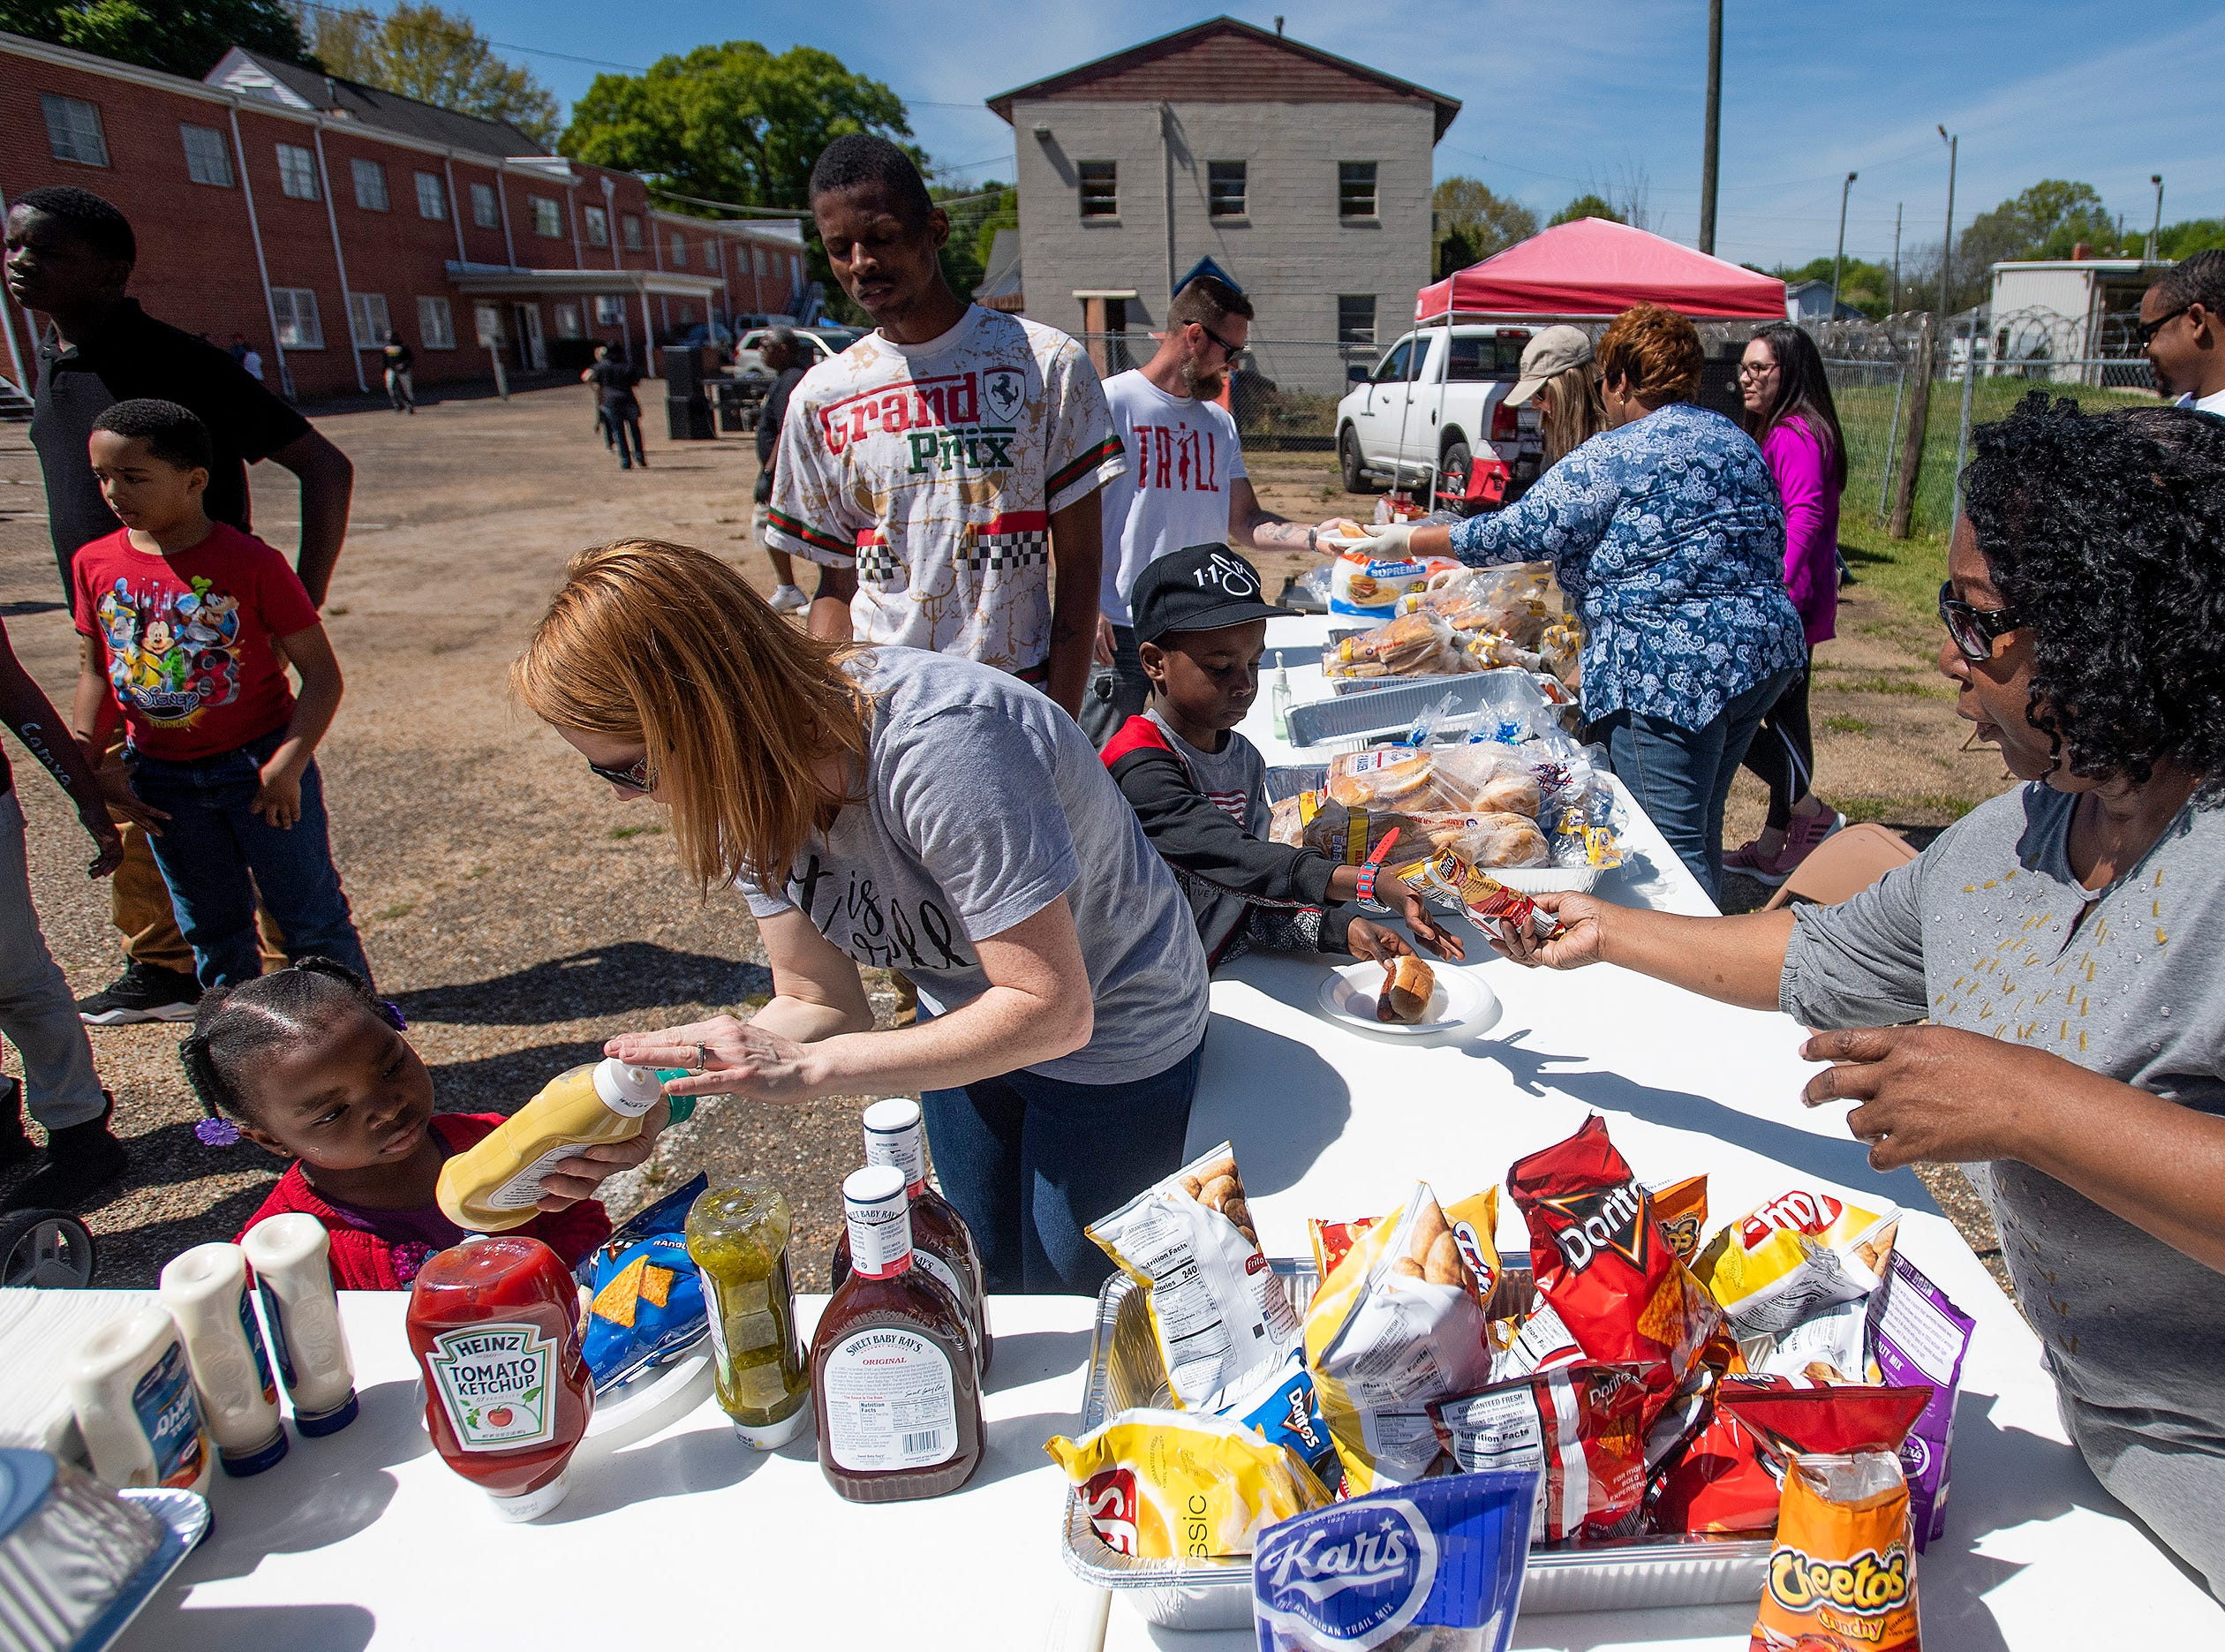 Hamburgers and hotdogs are served as Flatline Church hosts a block party for the Chisholm neighborhood in Montgomery, Ala., on Saturday March 23, 2019.